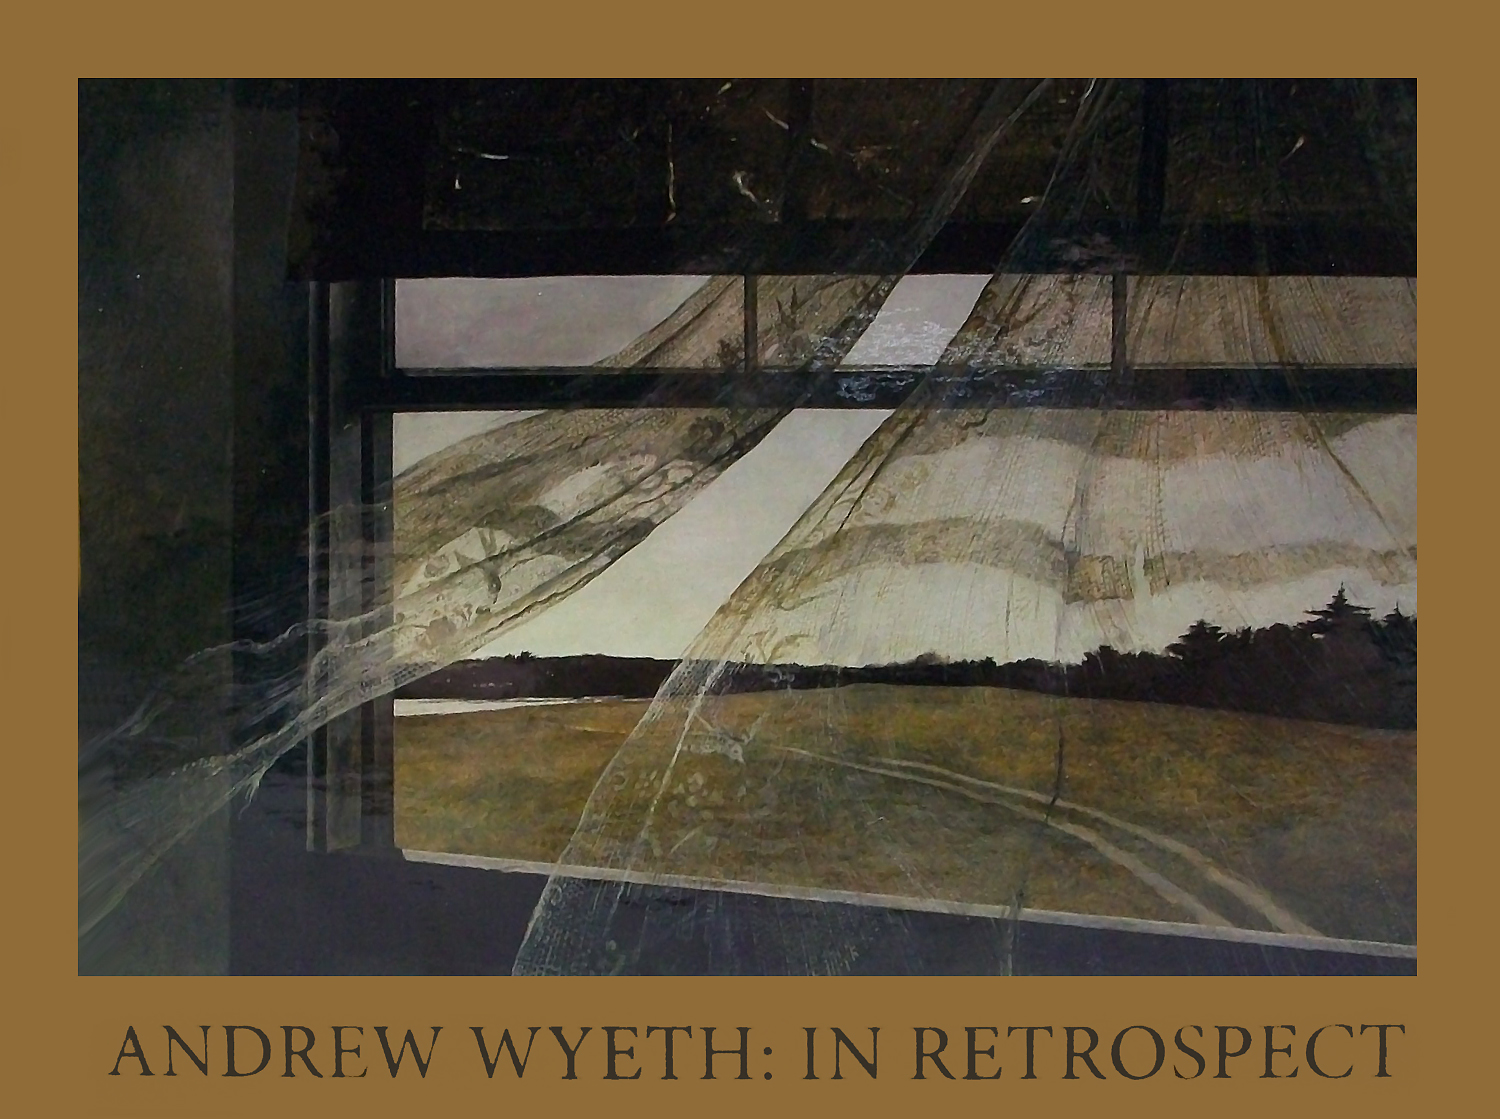 Andrew Wyeth: In Retrospect Notebox